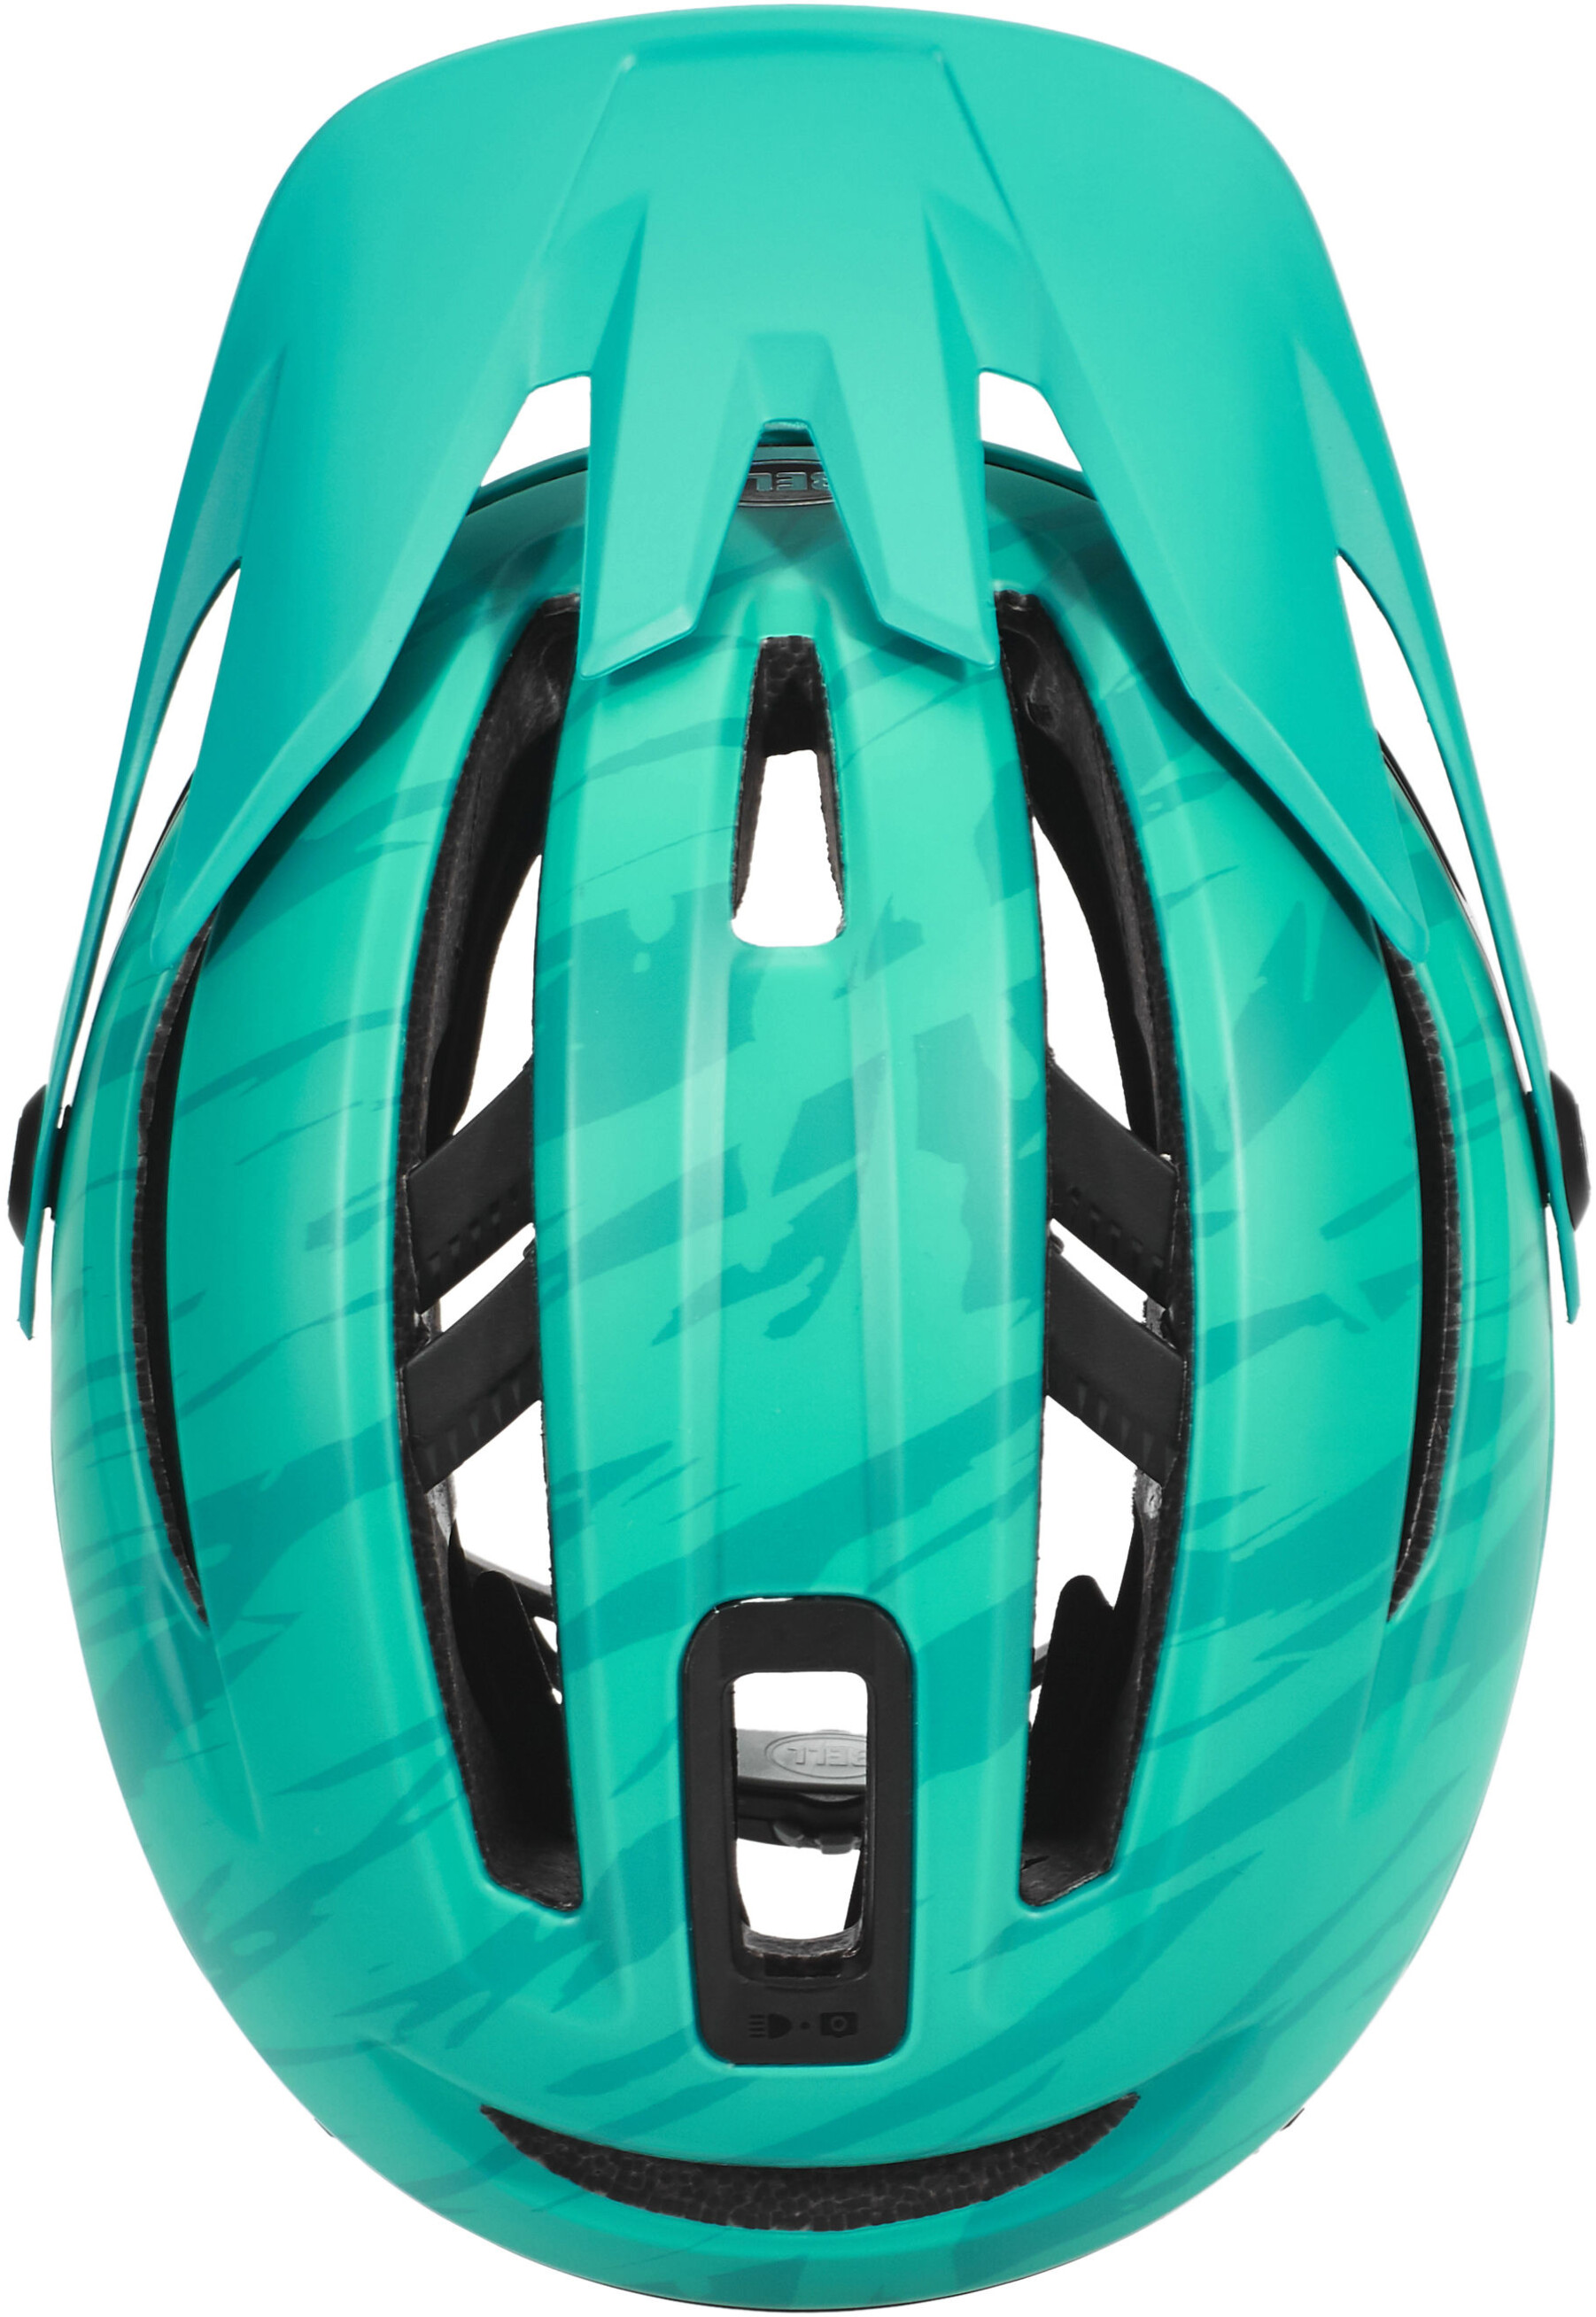 bell sixer mips mtb helmet matte emerald black online kaufen. Black Bedroom Furniture Sets. Home Design Ideas